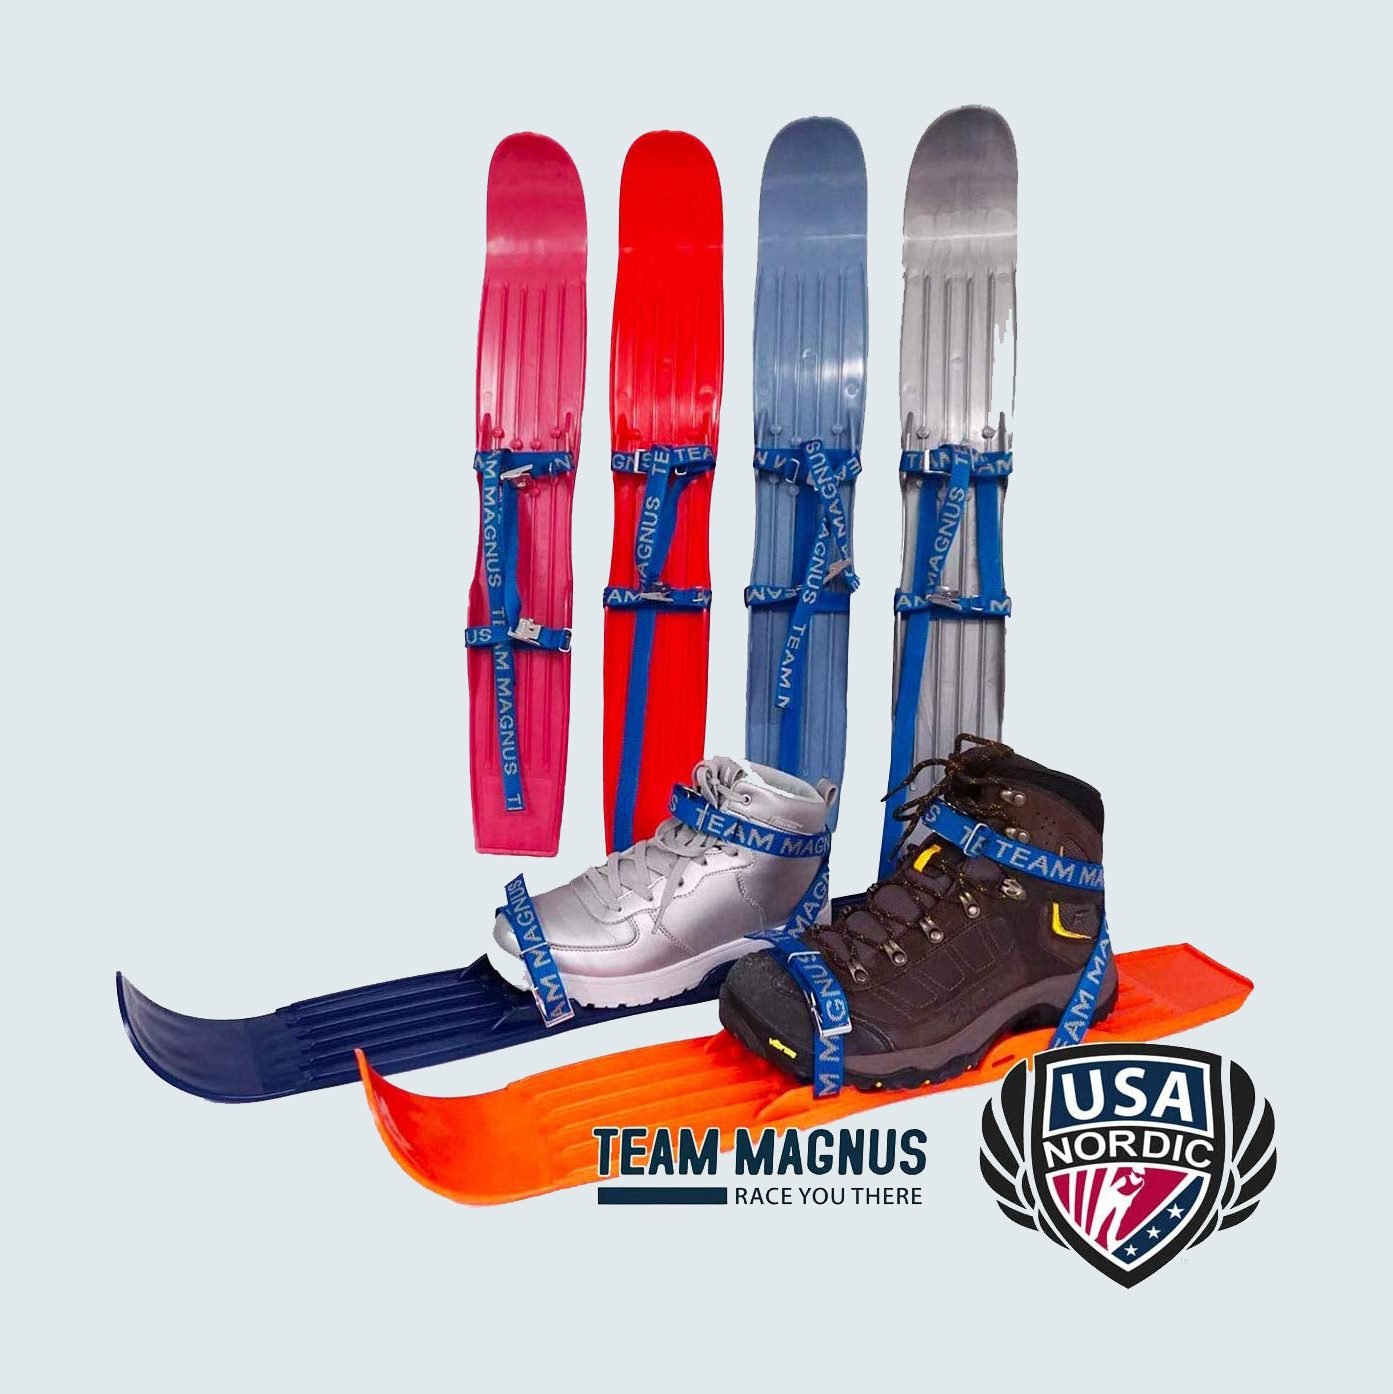 Team Magnus Snow Skis for Kids